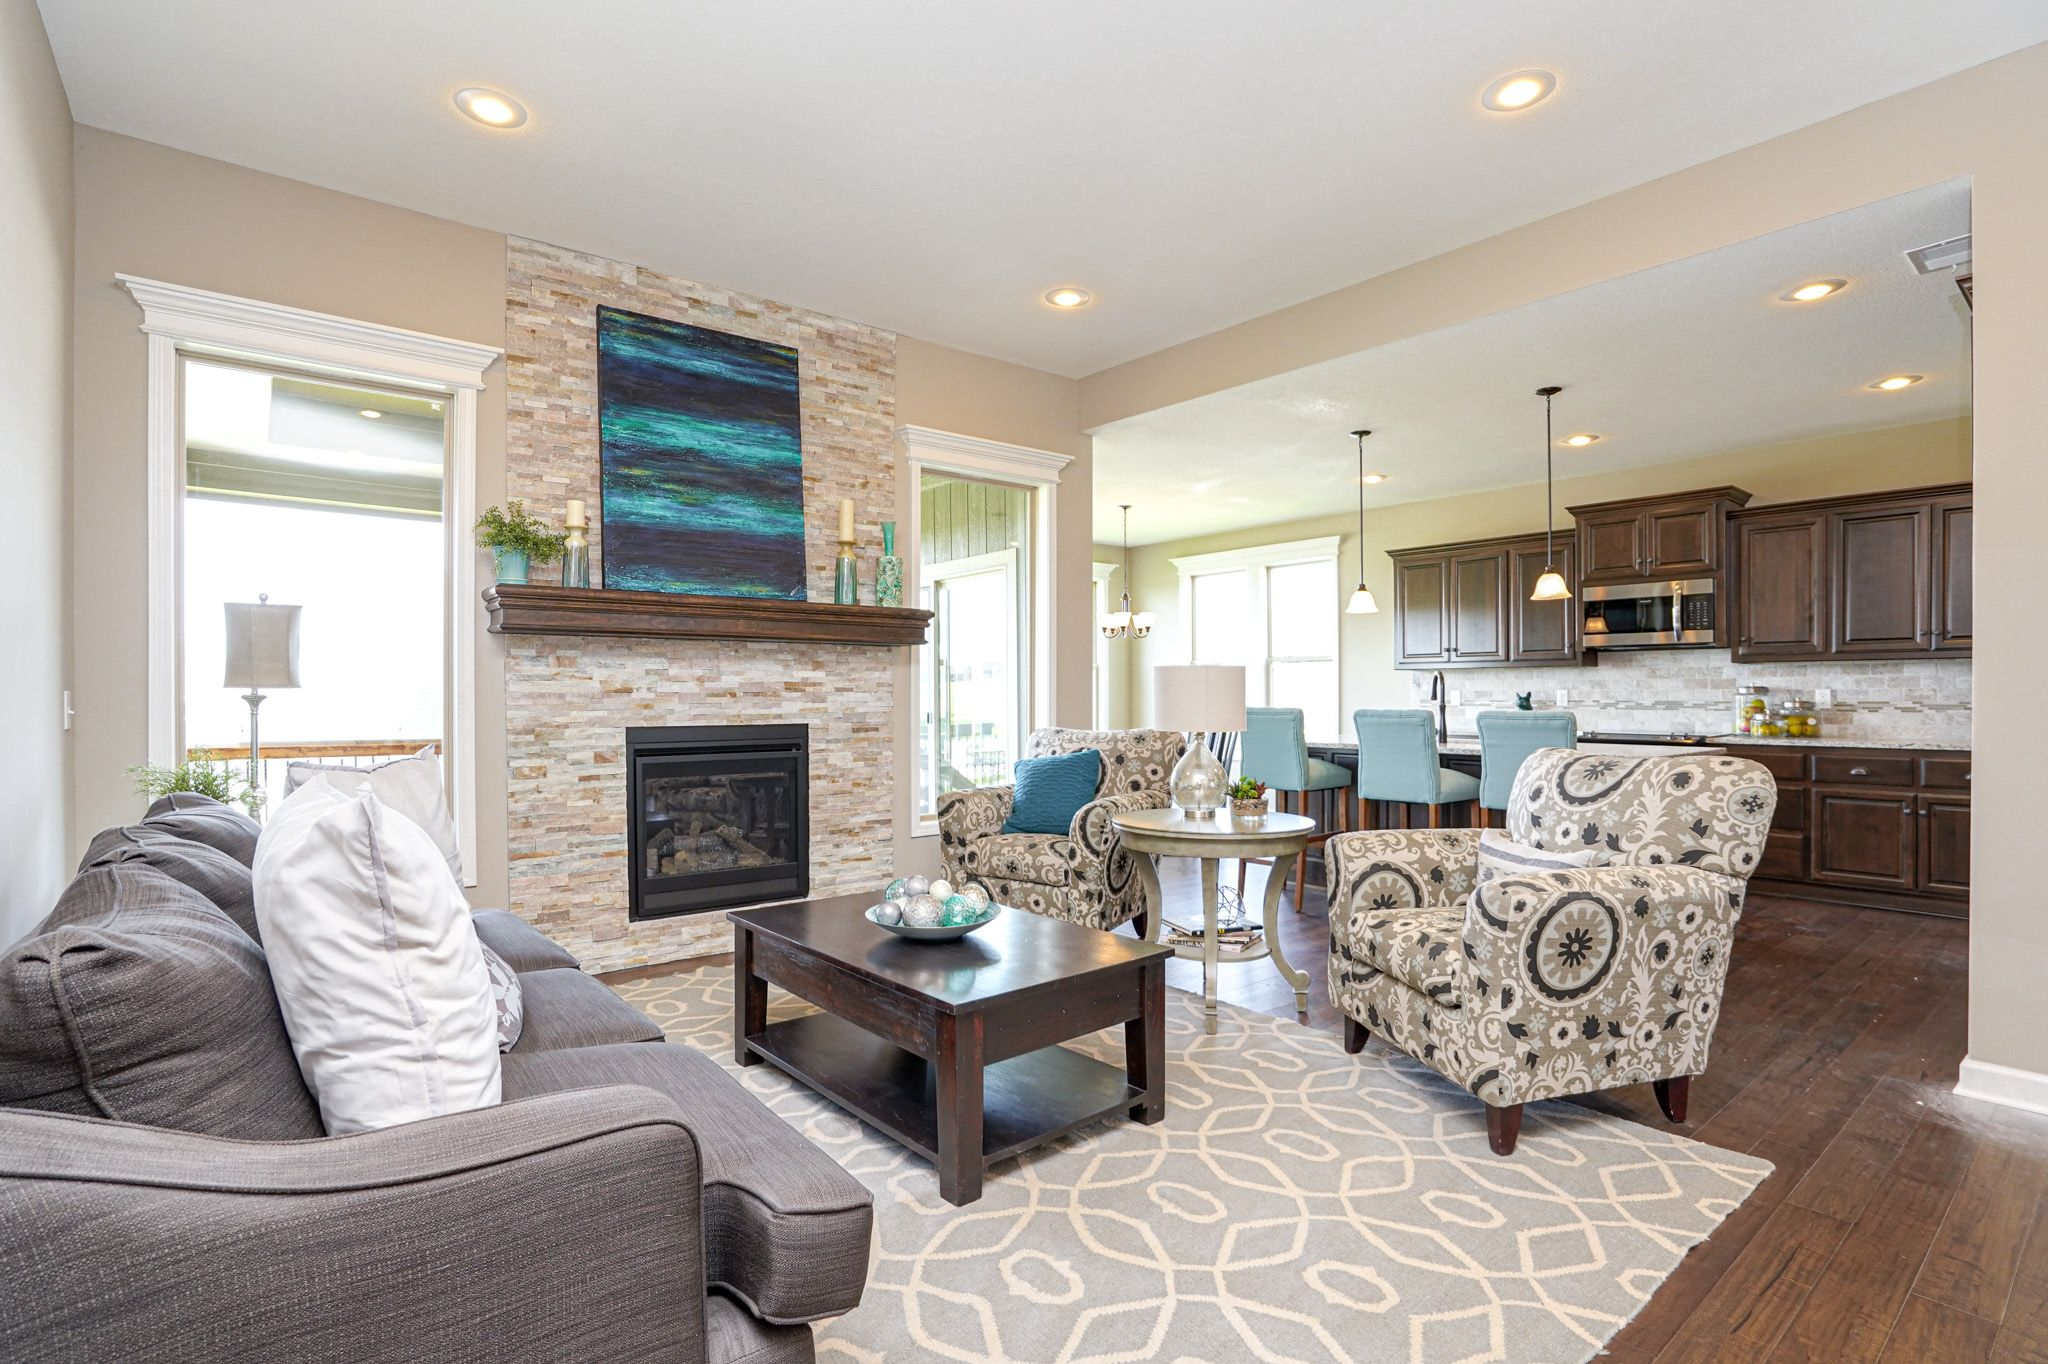 Living Area featured in the Cypress - Care free By Summit Homes in Kansas City, MO